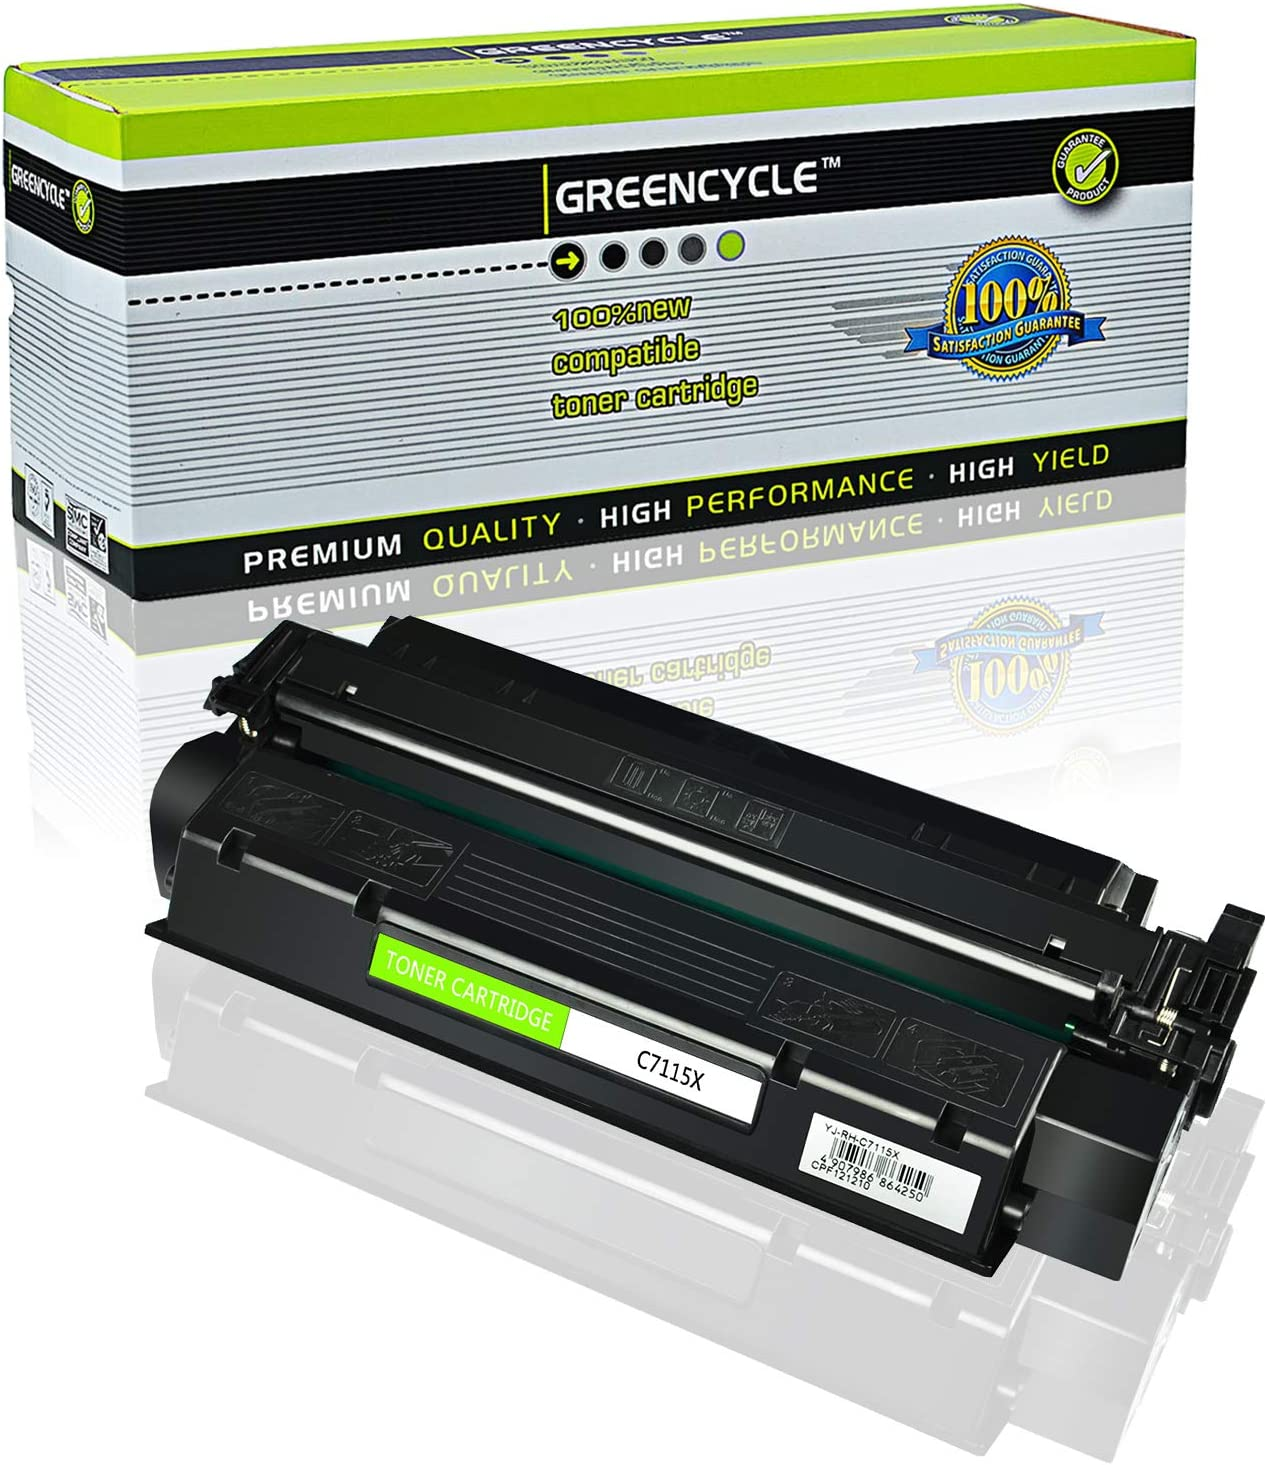 Black, 1-Pack GREENCYCLE 3500 Pages per High Yield Toner Cartridge Replacement Compatible for HP 15X C7115X Used in Laserjet 1000 1005W 1200n 1220 3300 MFP 3320 3330 MFP 3380